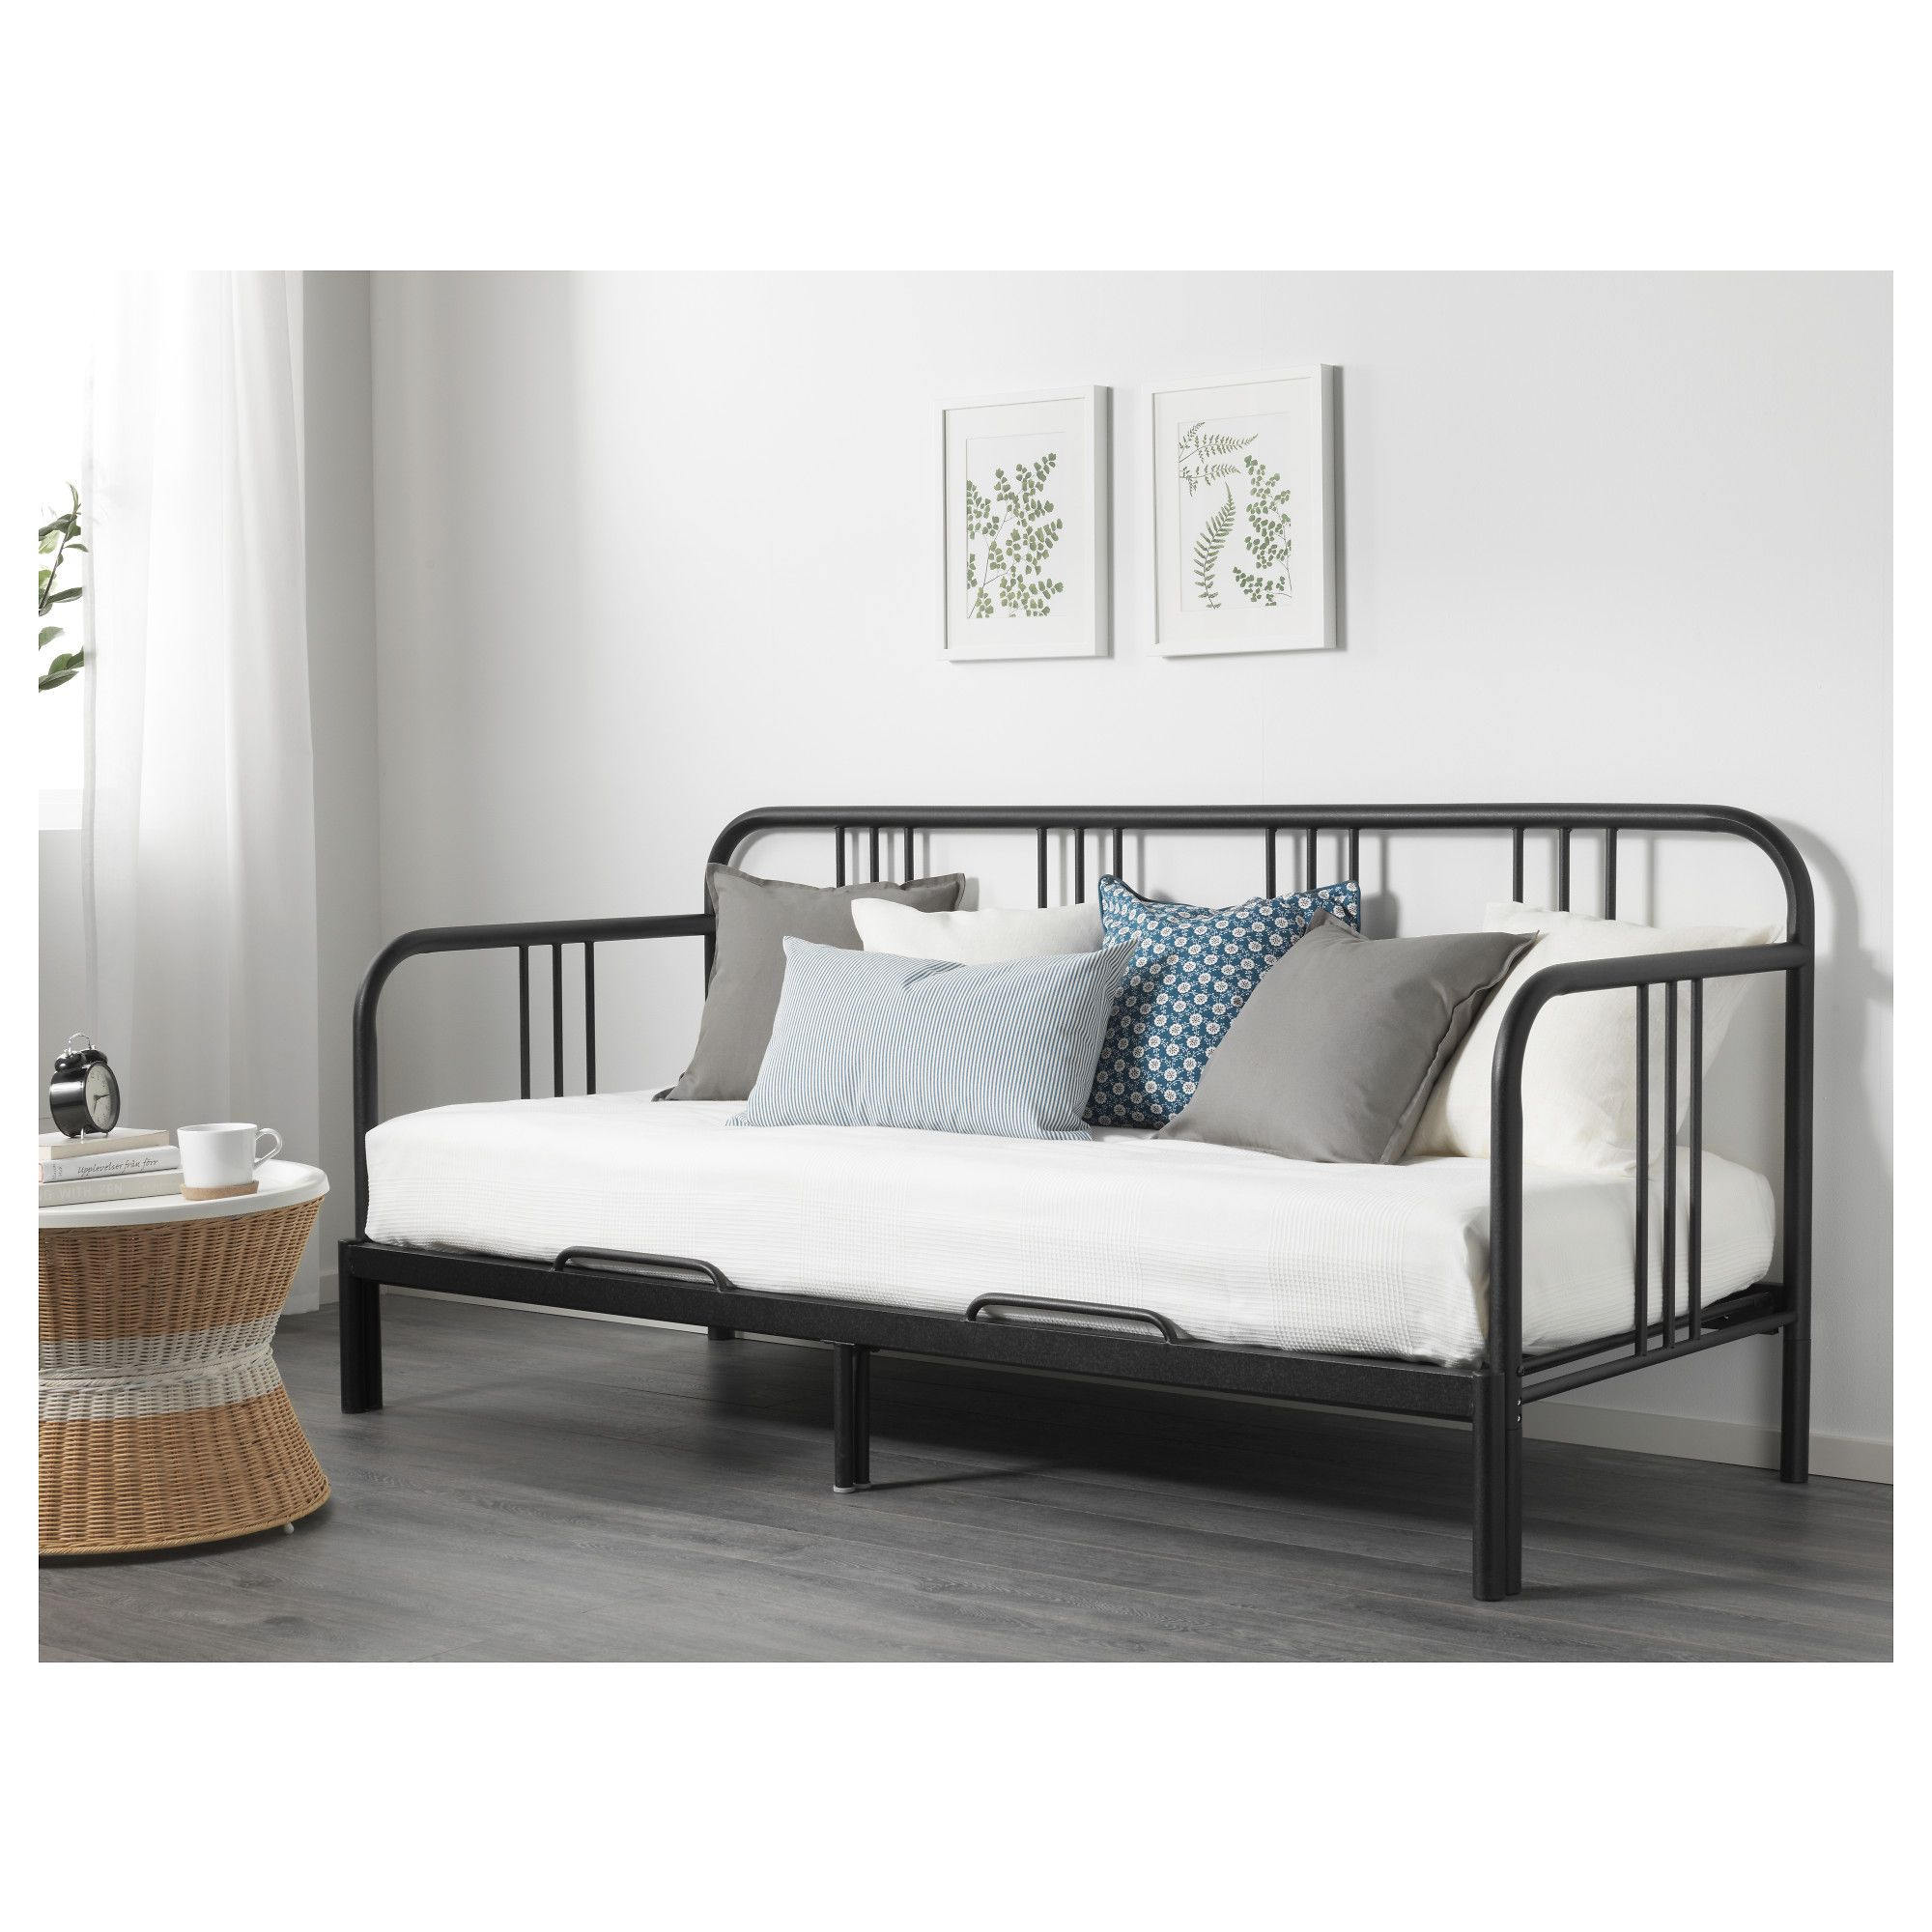 Hemnes day bed frame with 3 drawers grey 80x200 cm ikea - Fyresdal Day Bed With 2 Mattresses Black Moshult Firm 80x200 Cm